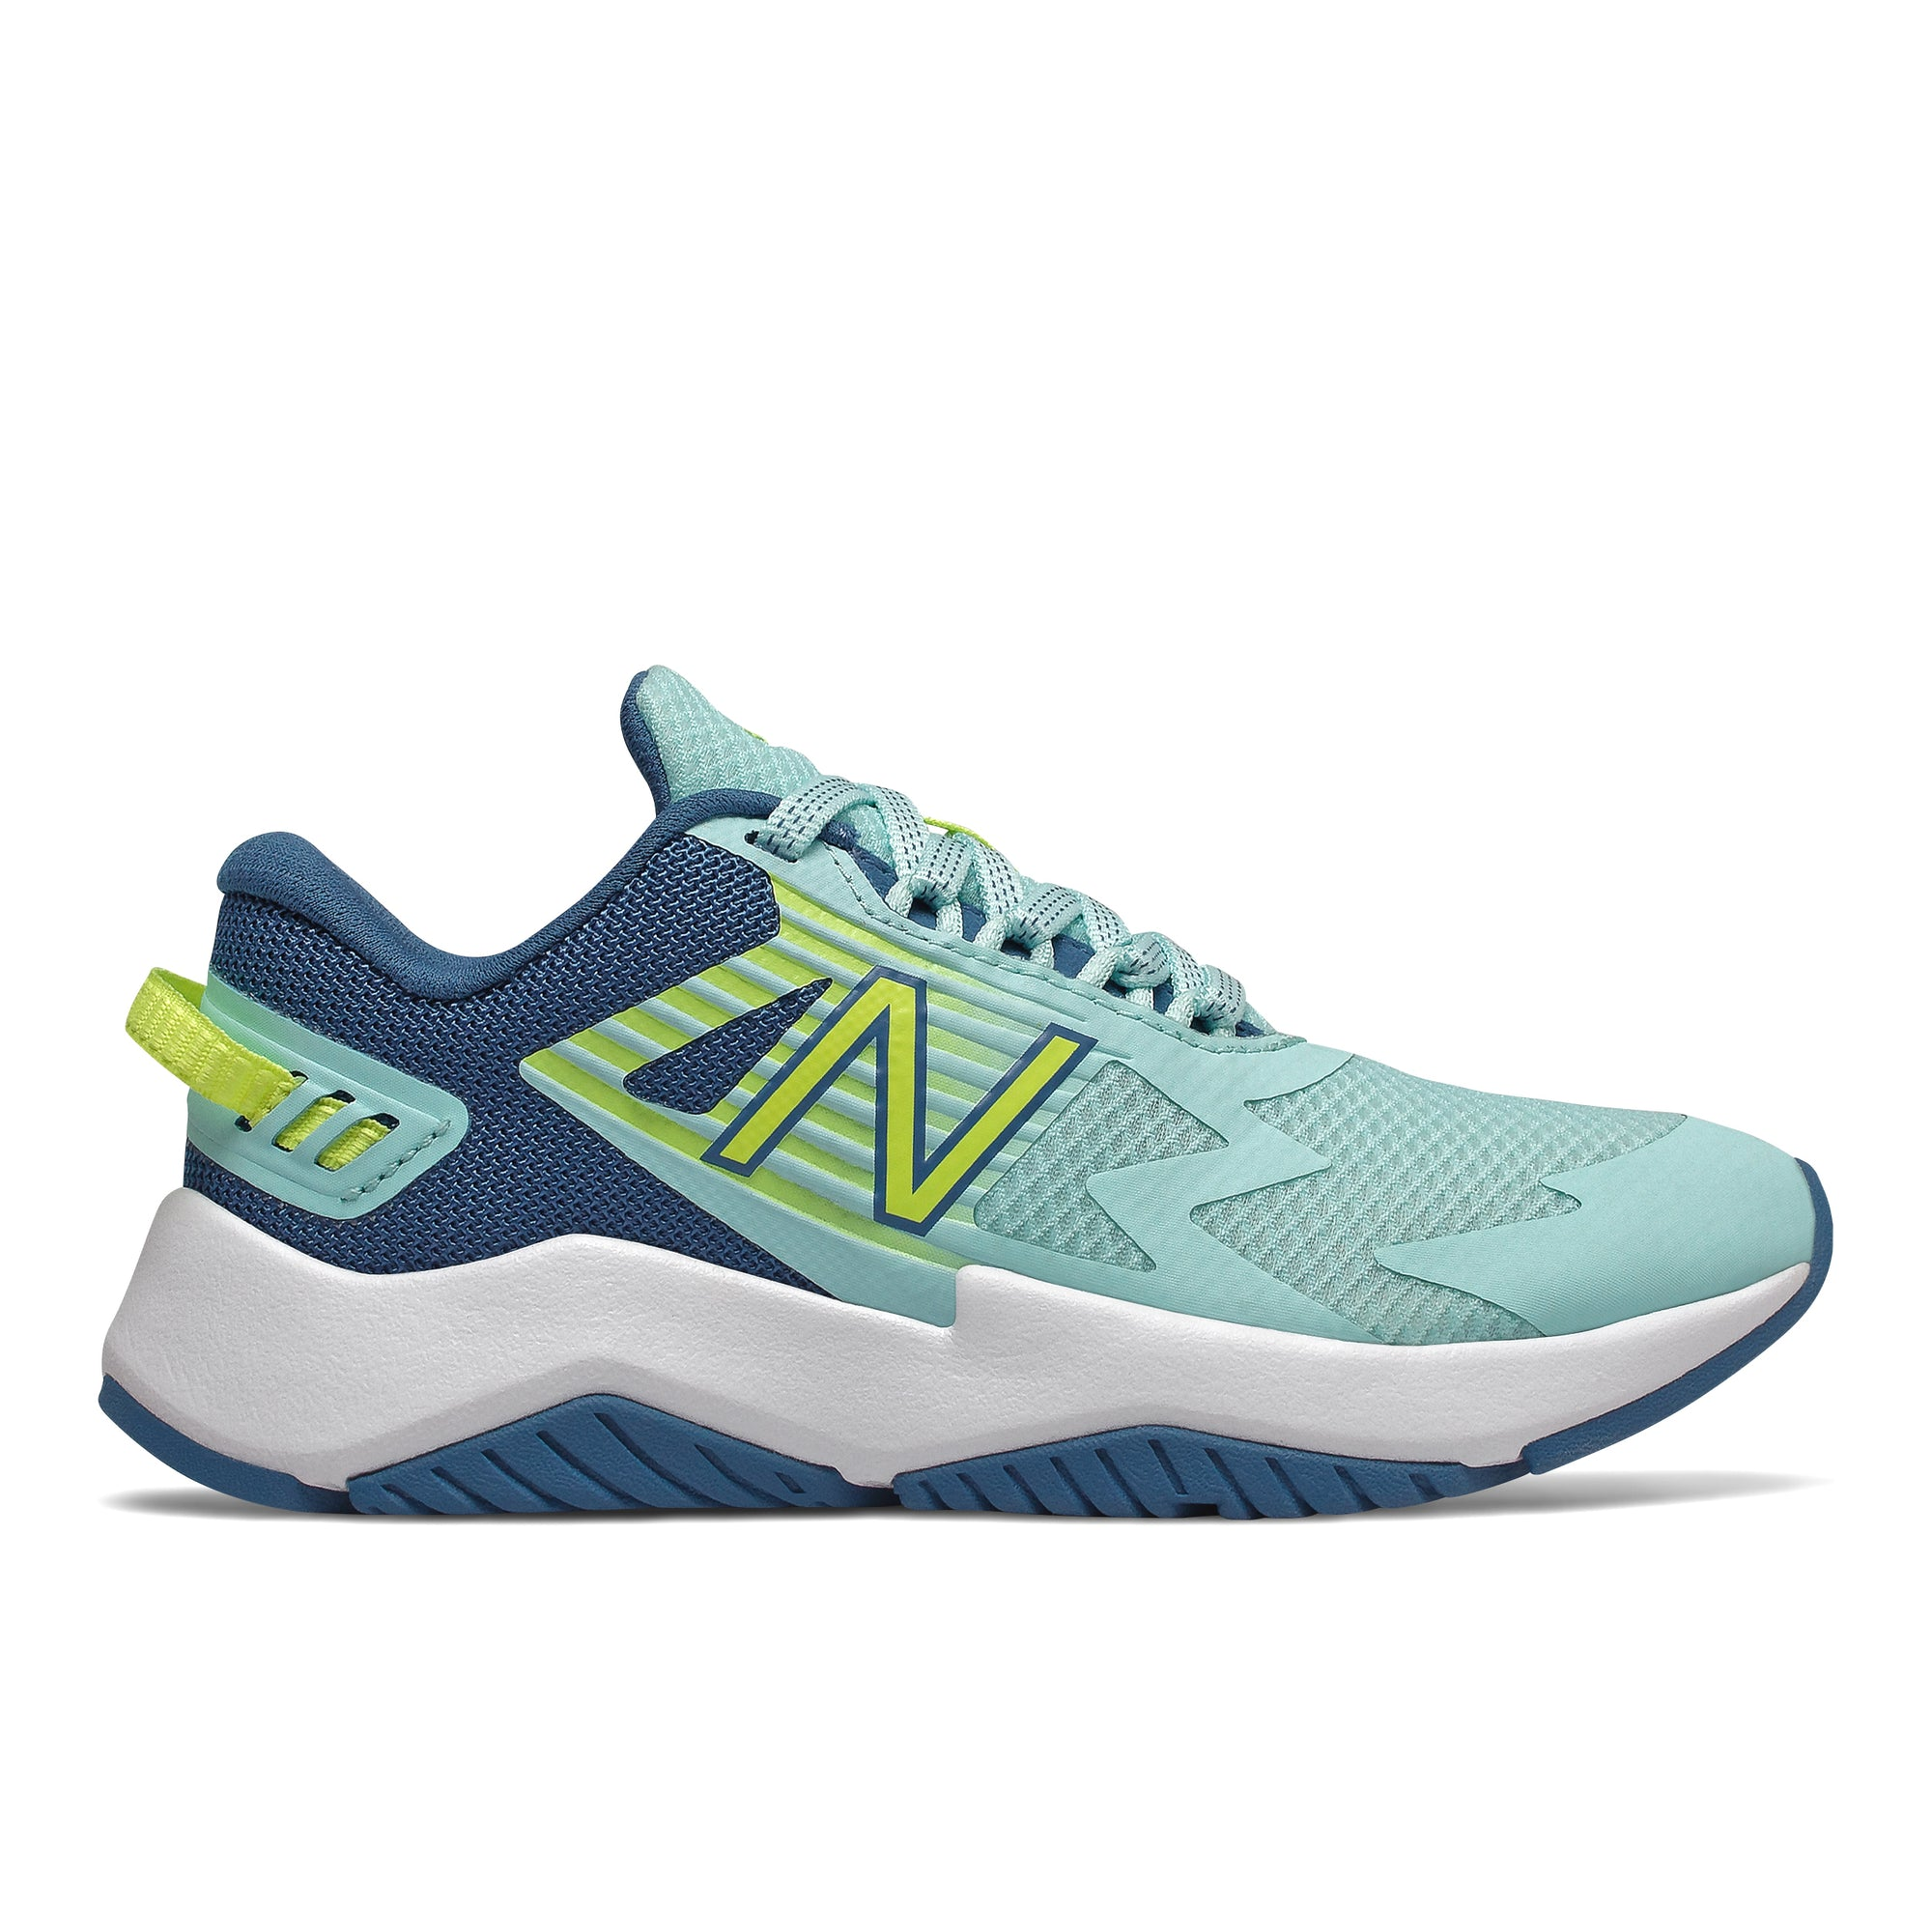 Rave Run - Bali Blue / Mako Blue / Lemon Slush